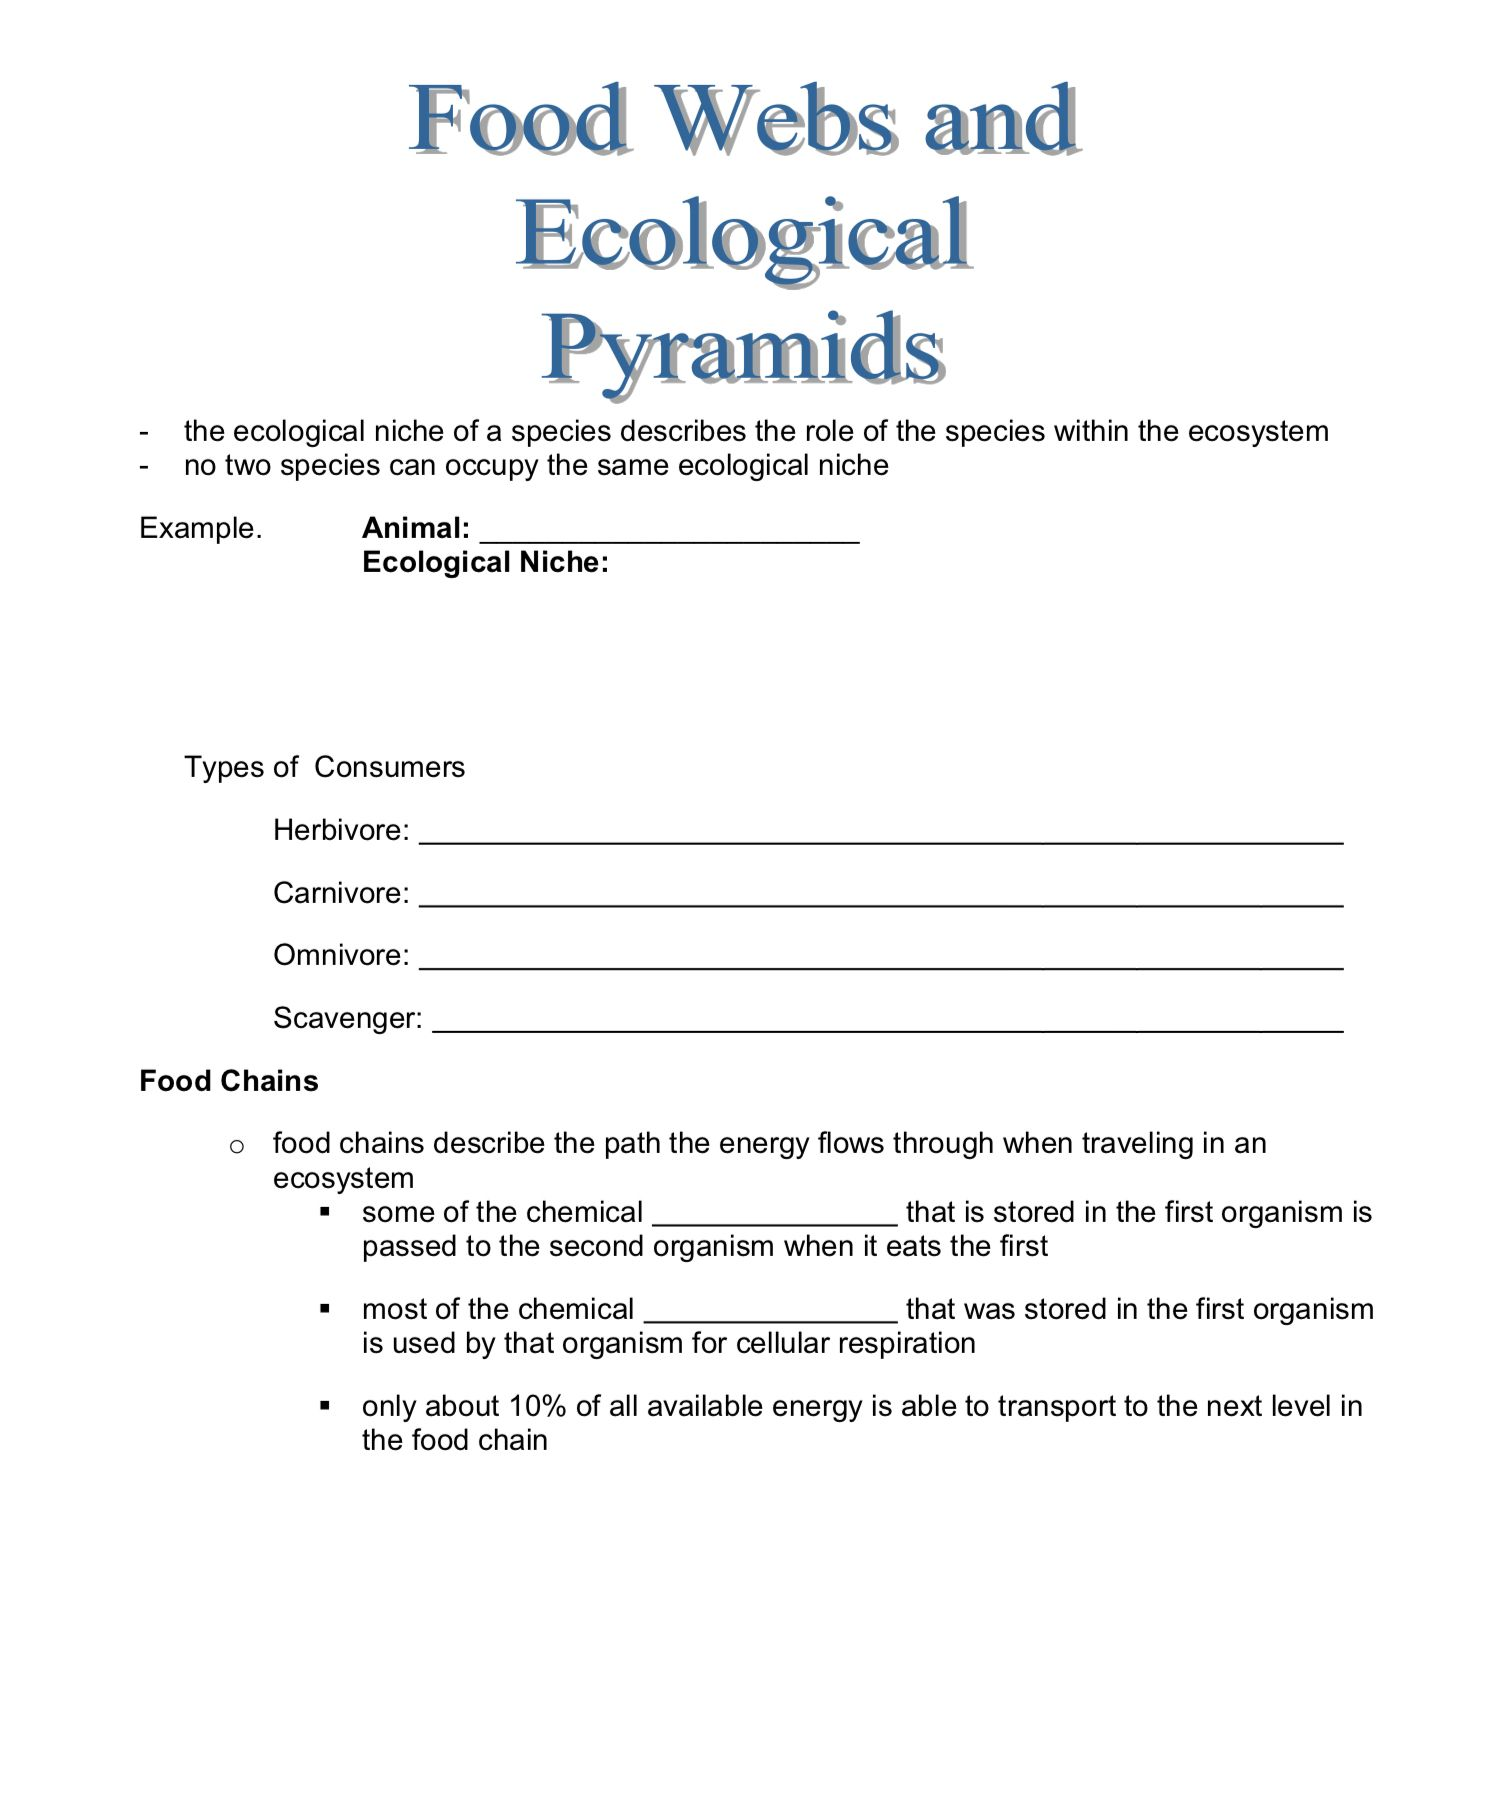 Food Webs And Ecological Pyramids Worksheet Tuesday May 28 2019 Ecological Pyramid Food Web Template Printable